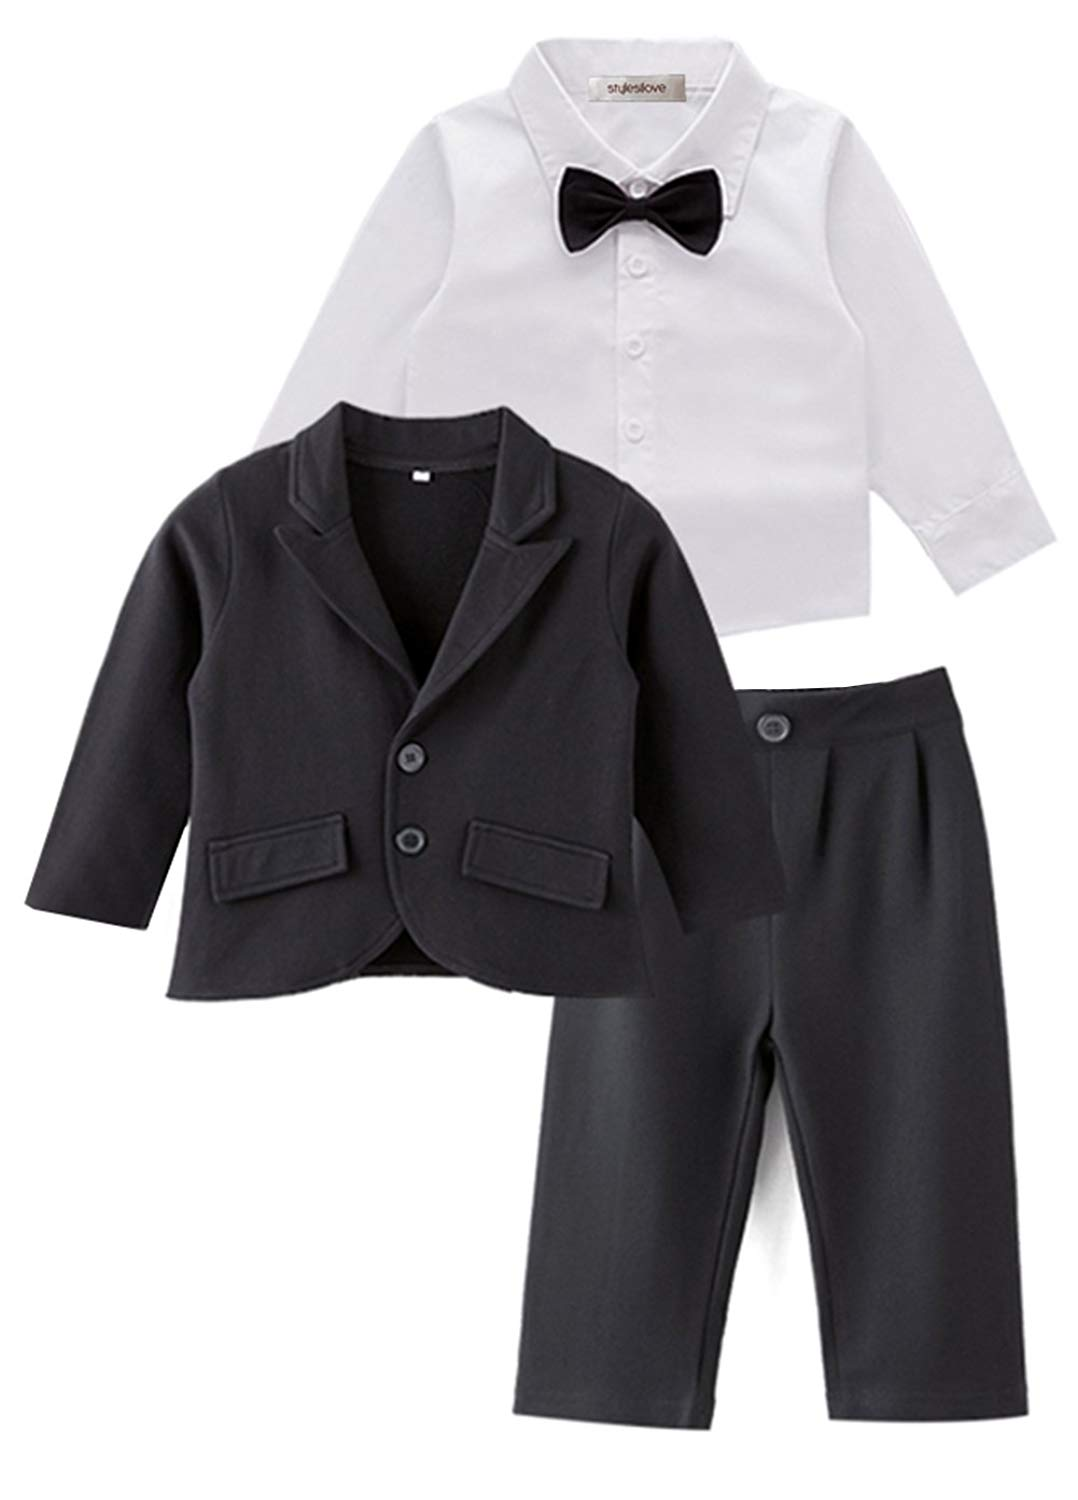 789da0c7f Get Quotations · stylesilove Baby Boy Tuxedo Formal Wear Suit 3-PC Shirt  Pants and Jacket